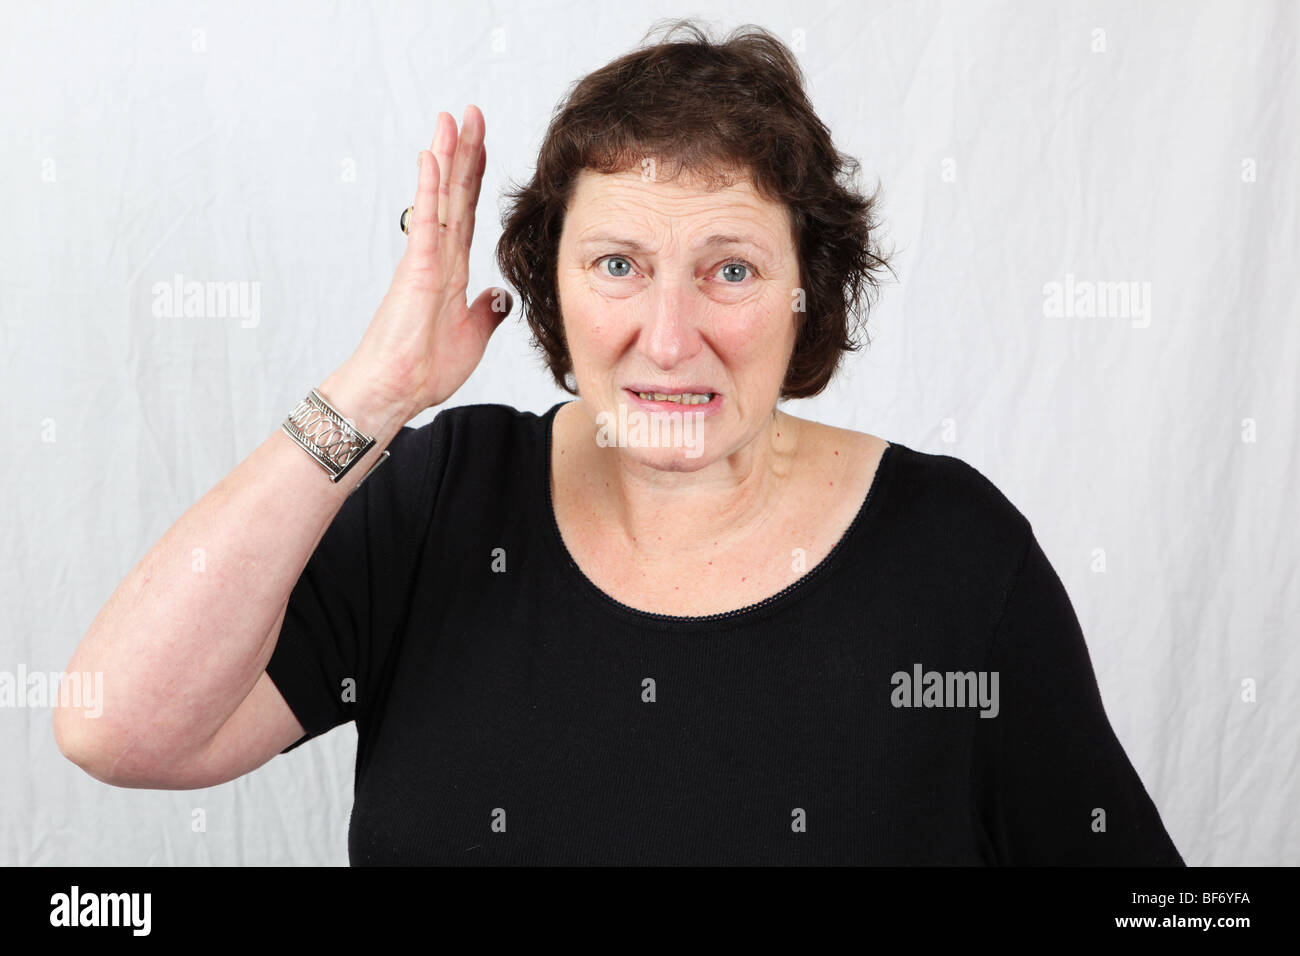 Angry 50s 60s late middle aged woman shows frustration with hand held in air looking menacing threatening violence - Stock Image